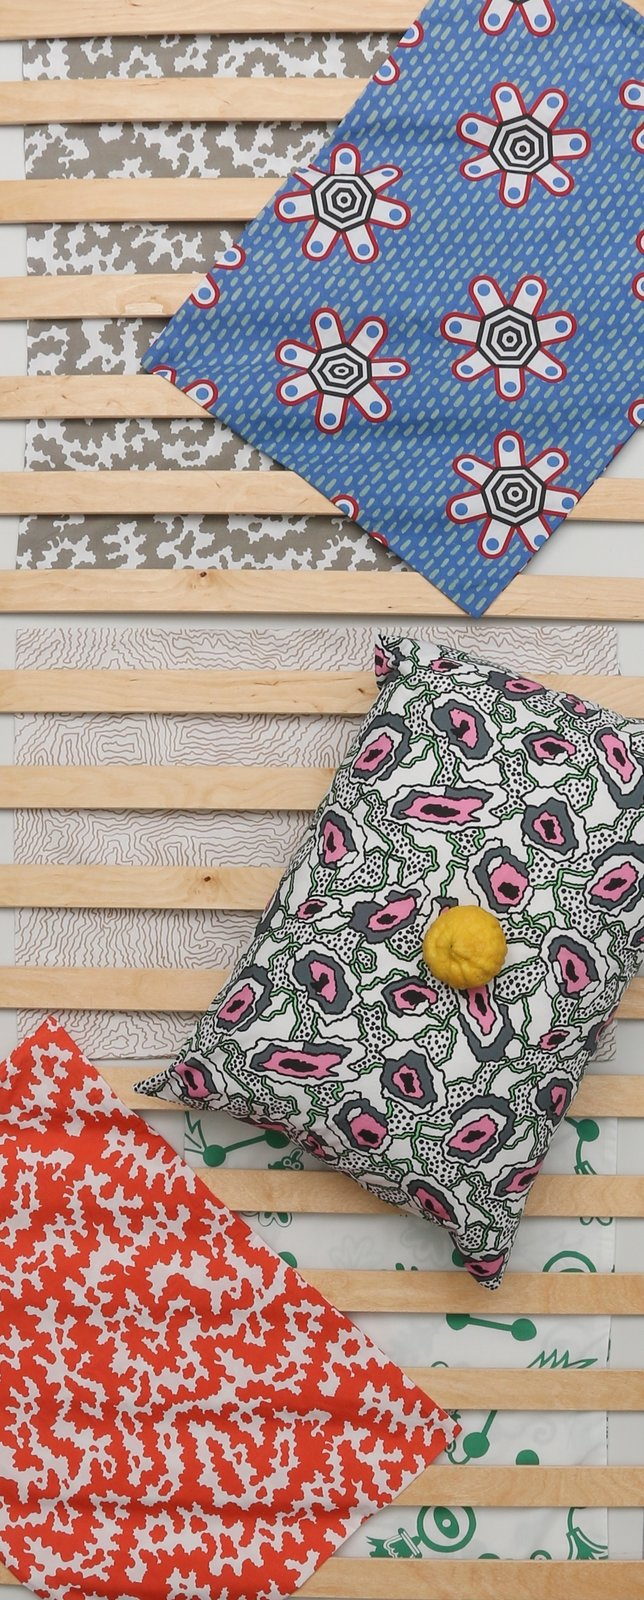 The duvet covers and bed pillows are made of 100 percent percale cotton and come in multiple playful patterns, all of which can easily be mixed and matched.  Photo 8 of 8 in Q&A With the Design Duo Behind a Playful Textile Collection